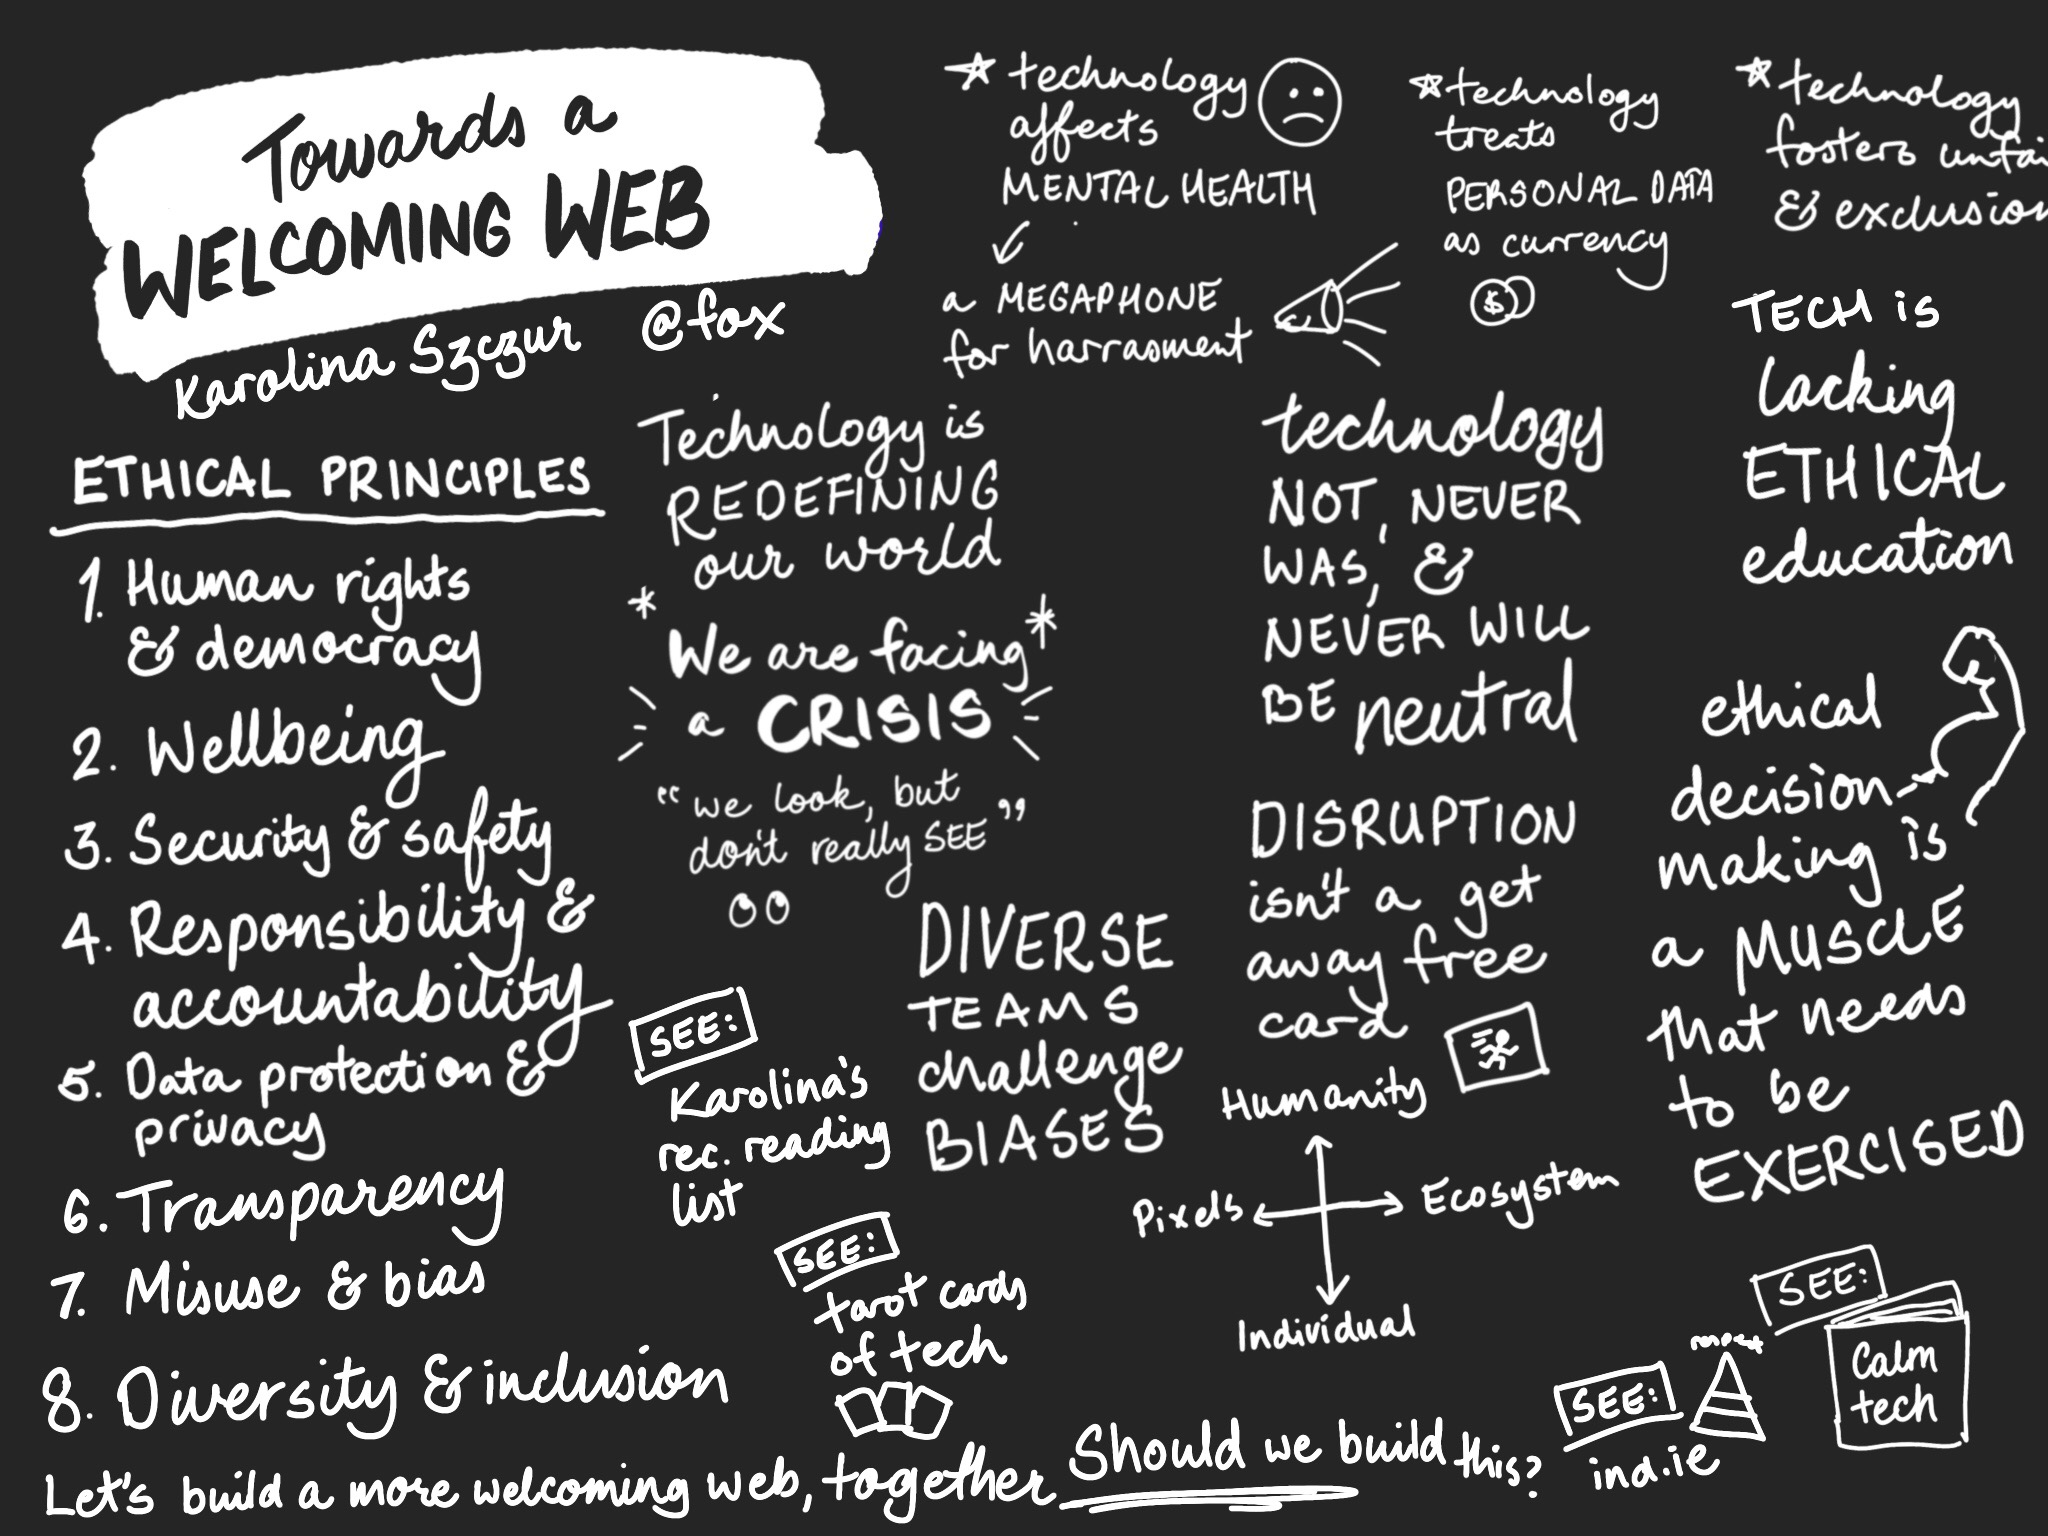 """Sketchnote of the talk """"Towards a Welcoming Web"""""""